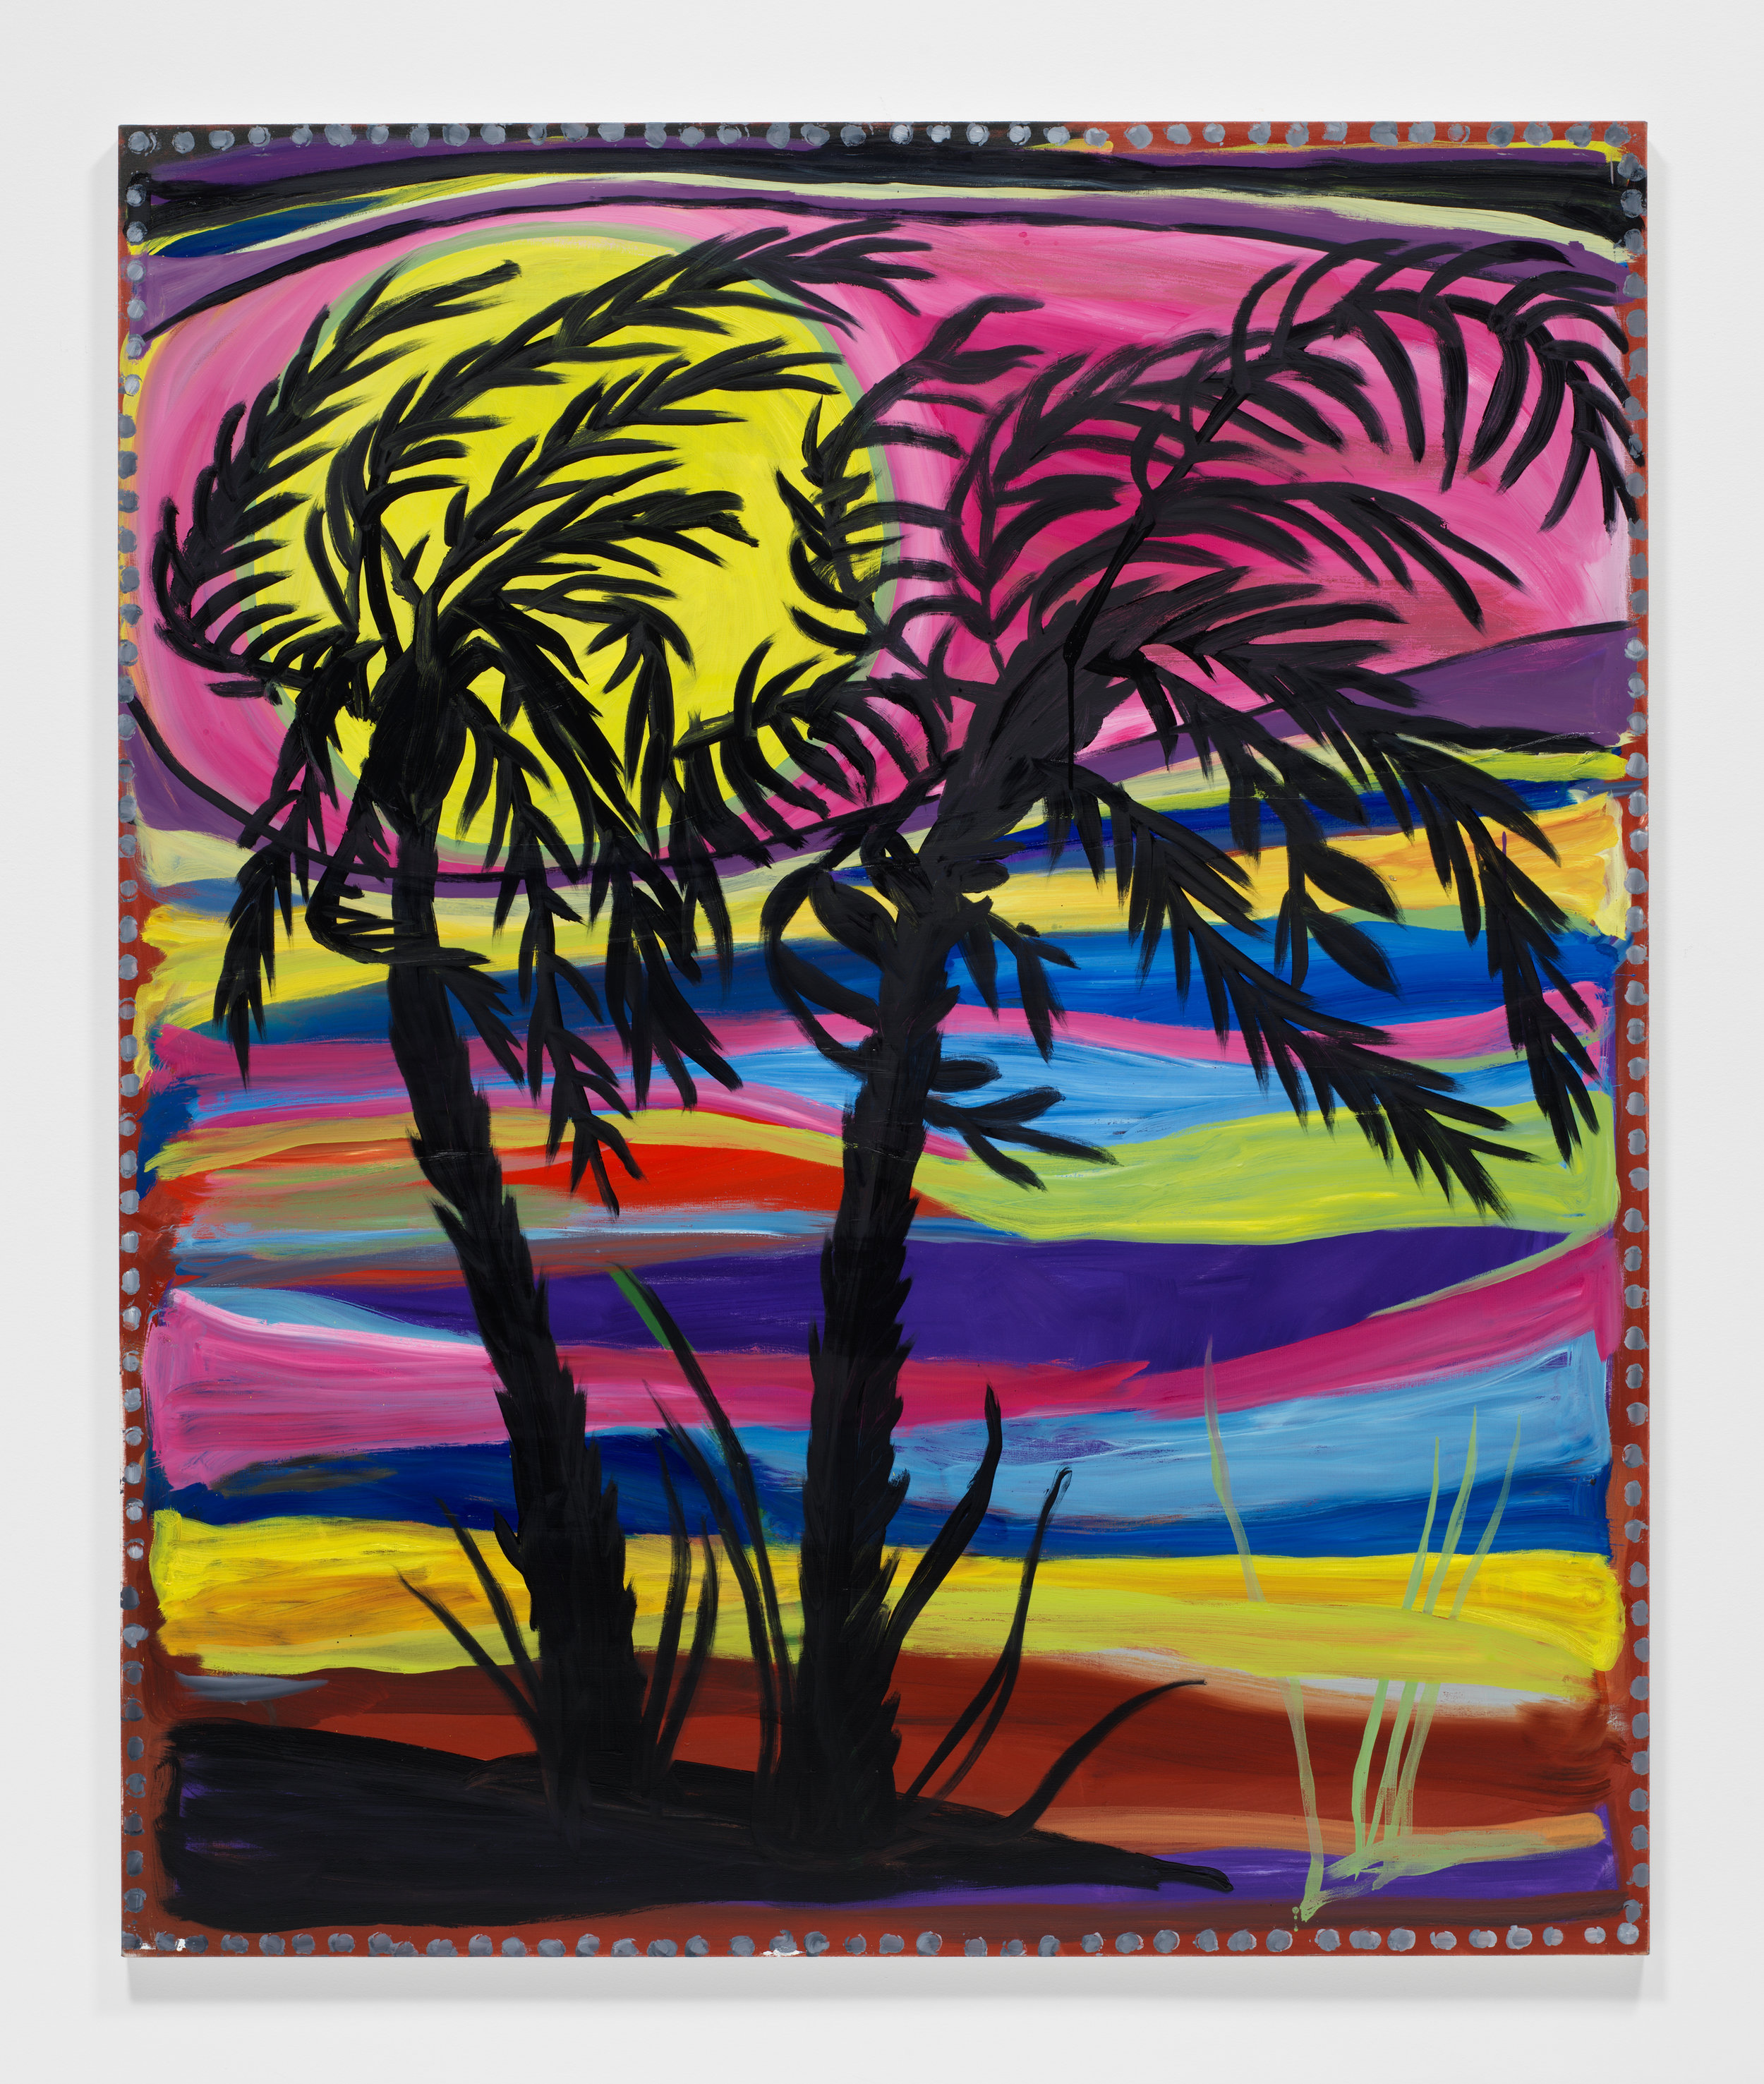 Josh Smith,   Palms #1 ,  2019, Oil on linen, 72 x 60 inches, 182.9 x 152.4 cm